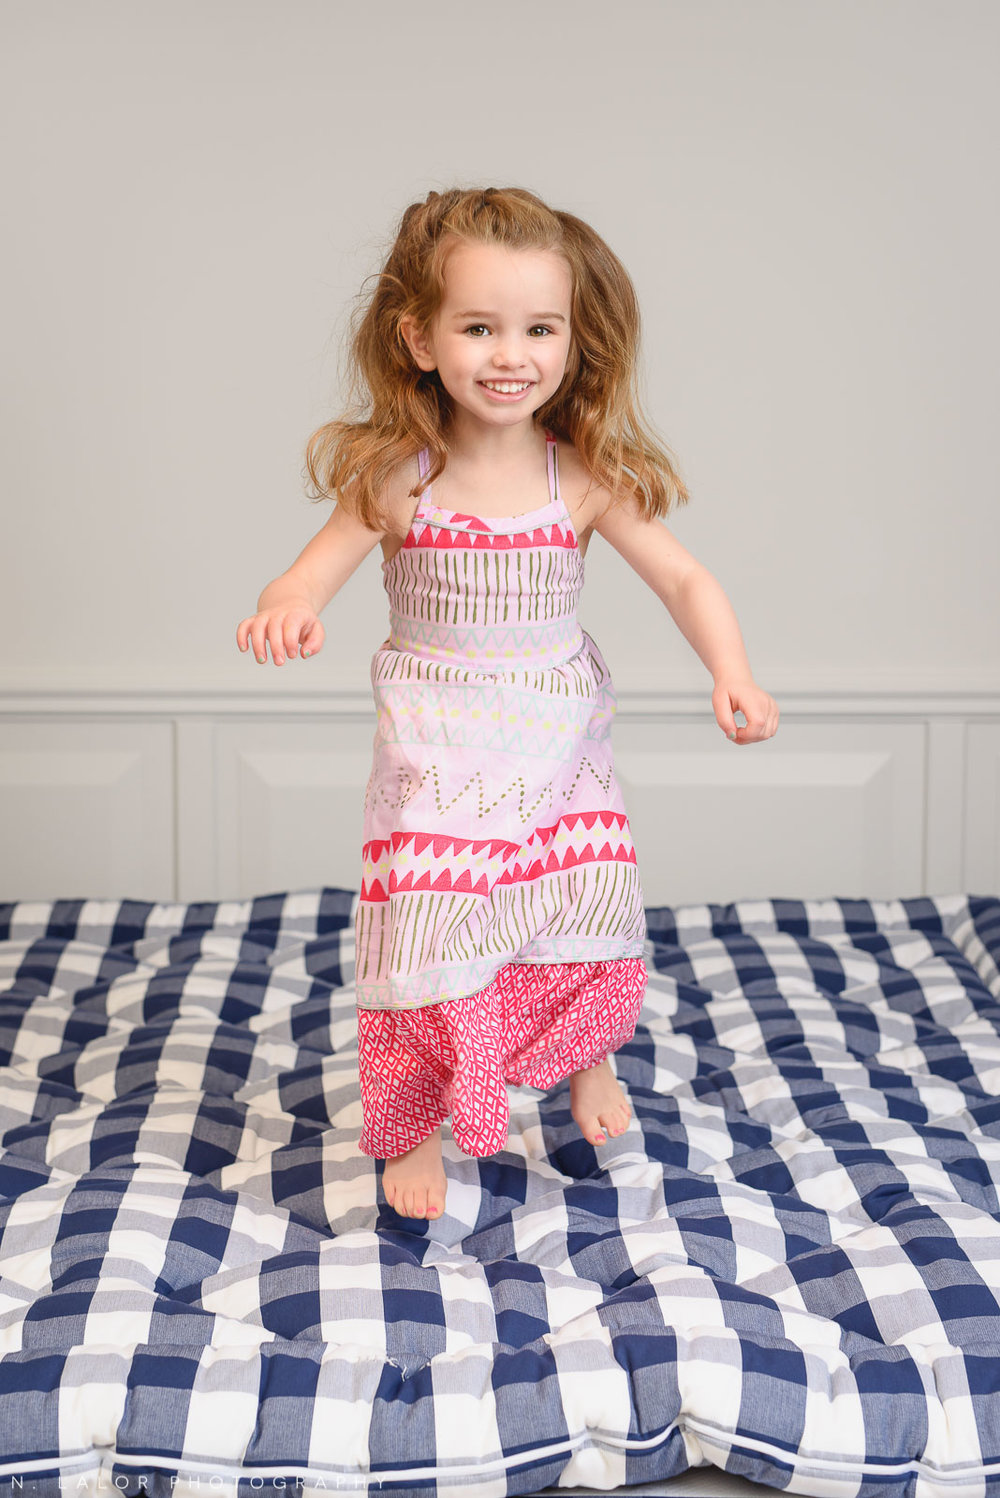 Little girl jumping on a luxury mattress. Limited-edition exclusive event with N. Lalor Photography and Hästens in Greenwich, Connecticut.